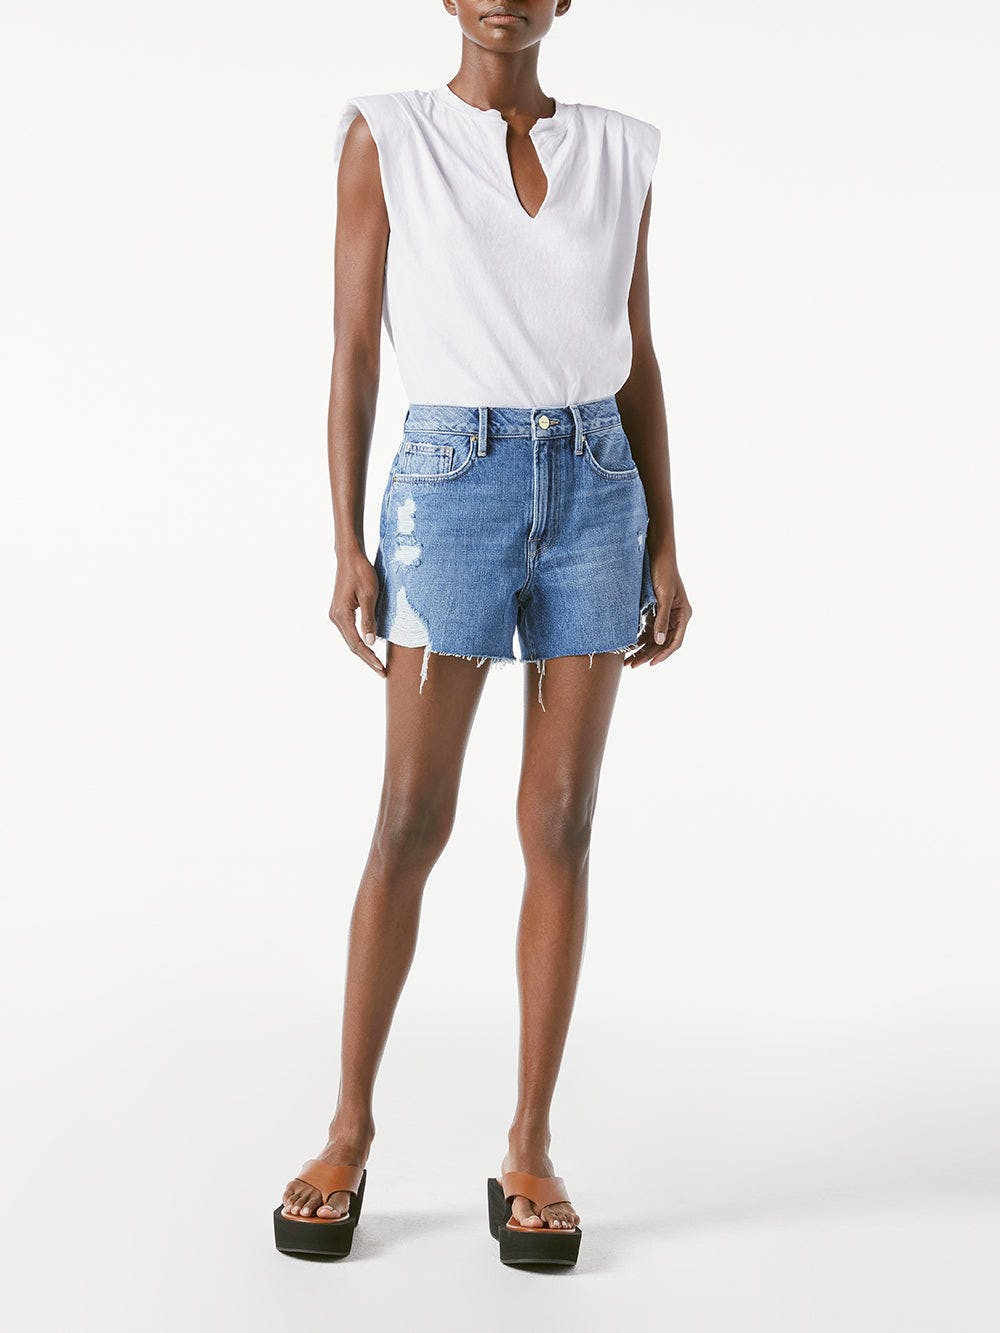 shorts front full body view